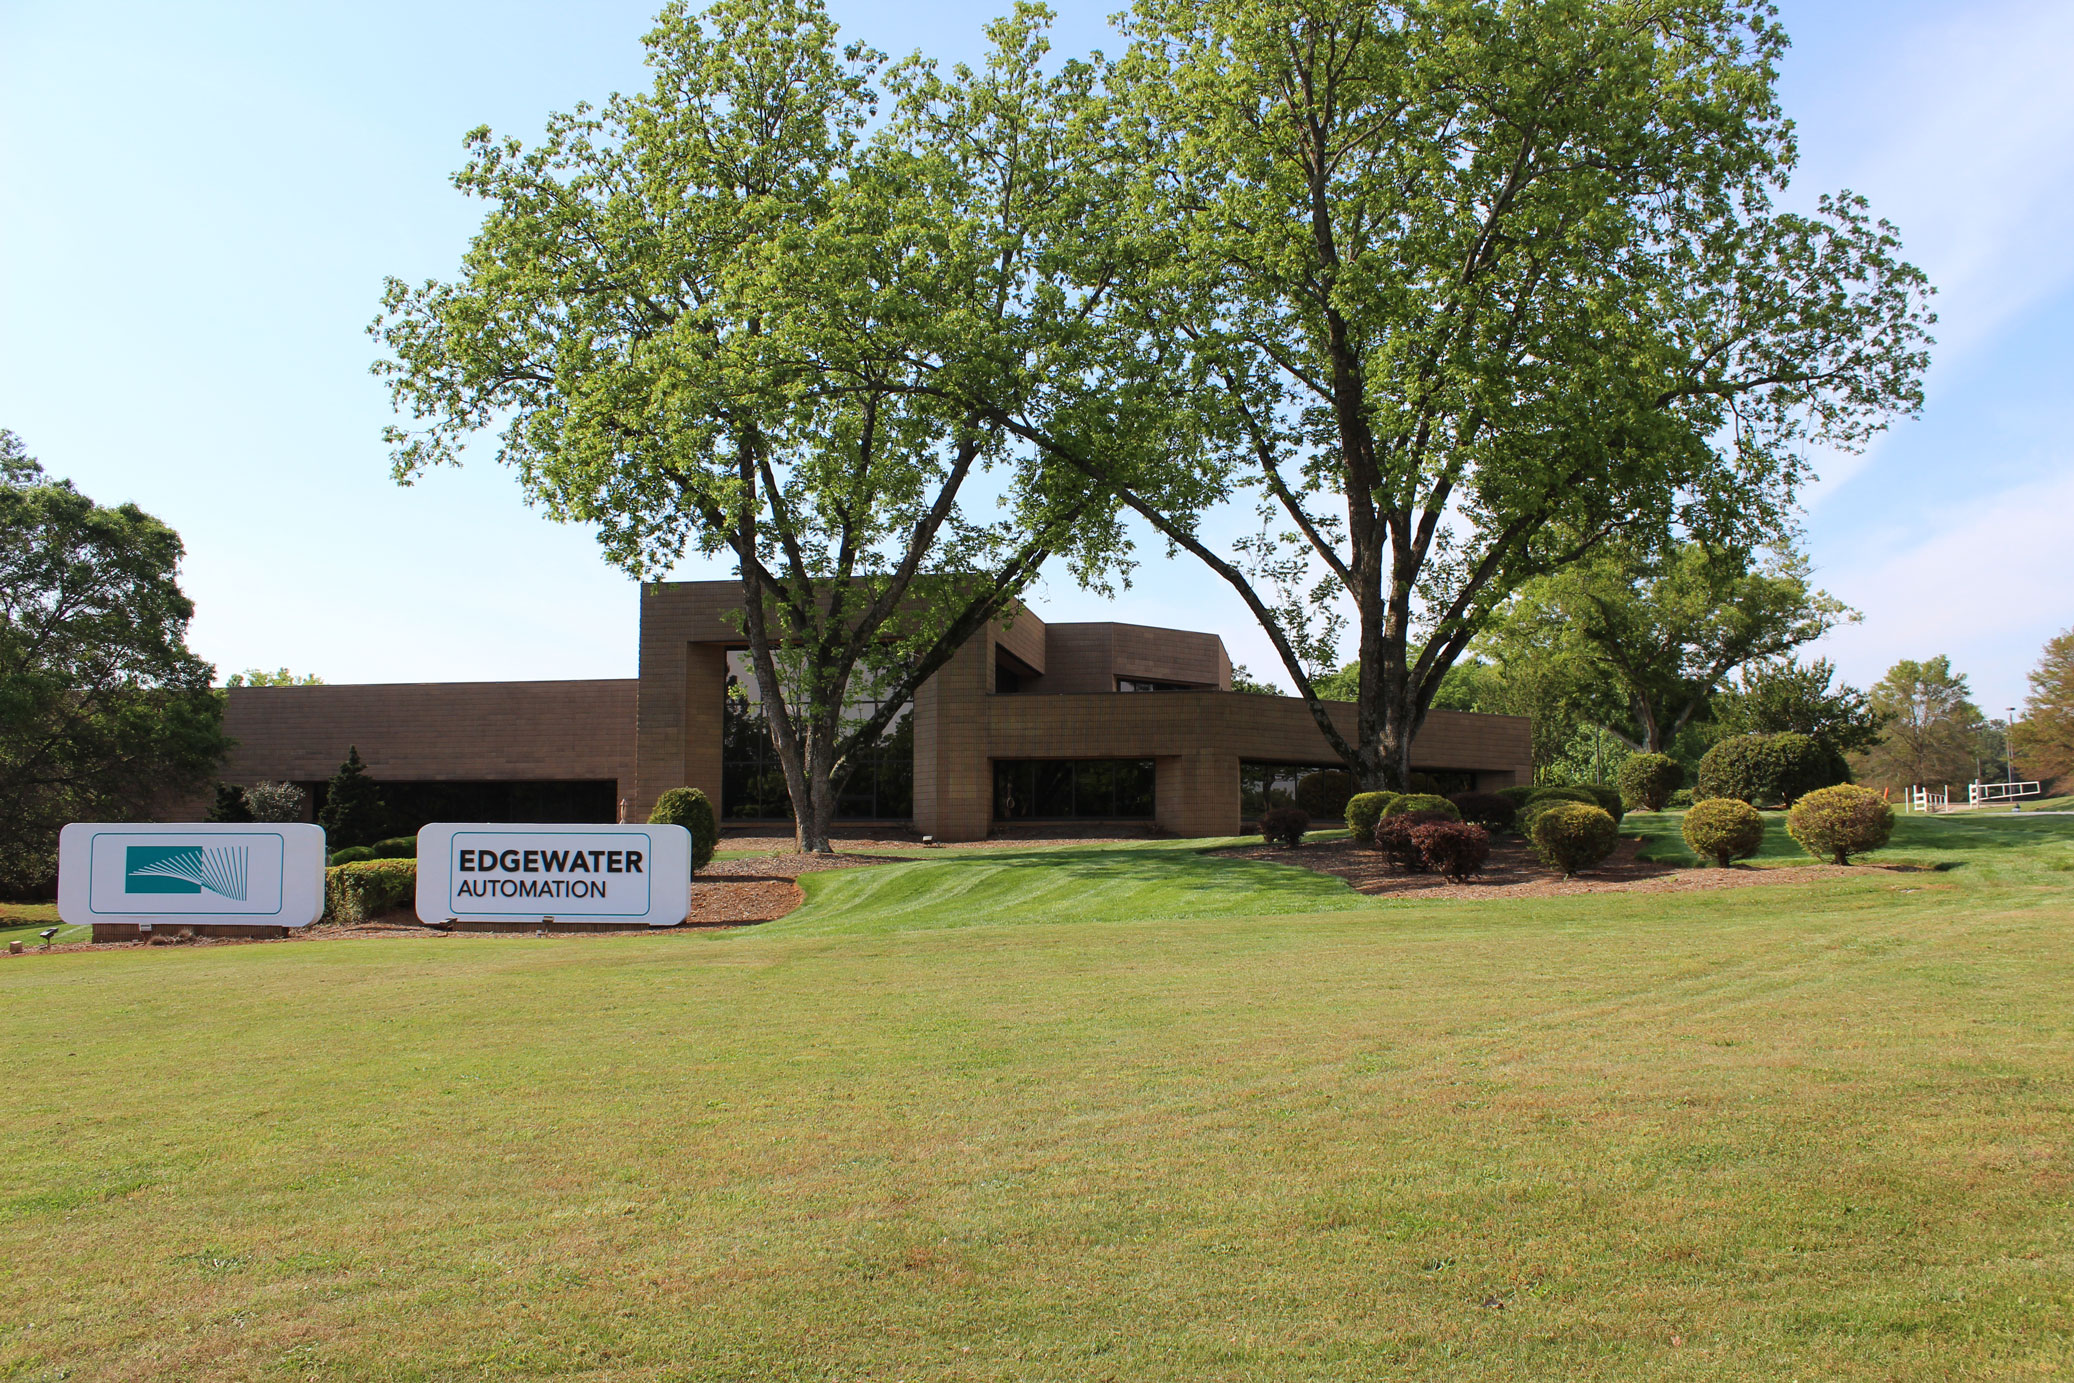 Edgewater Automation South Facility: Spartanburg, SC